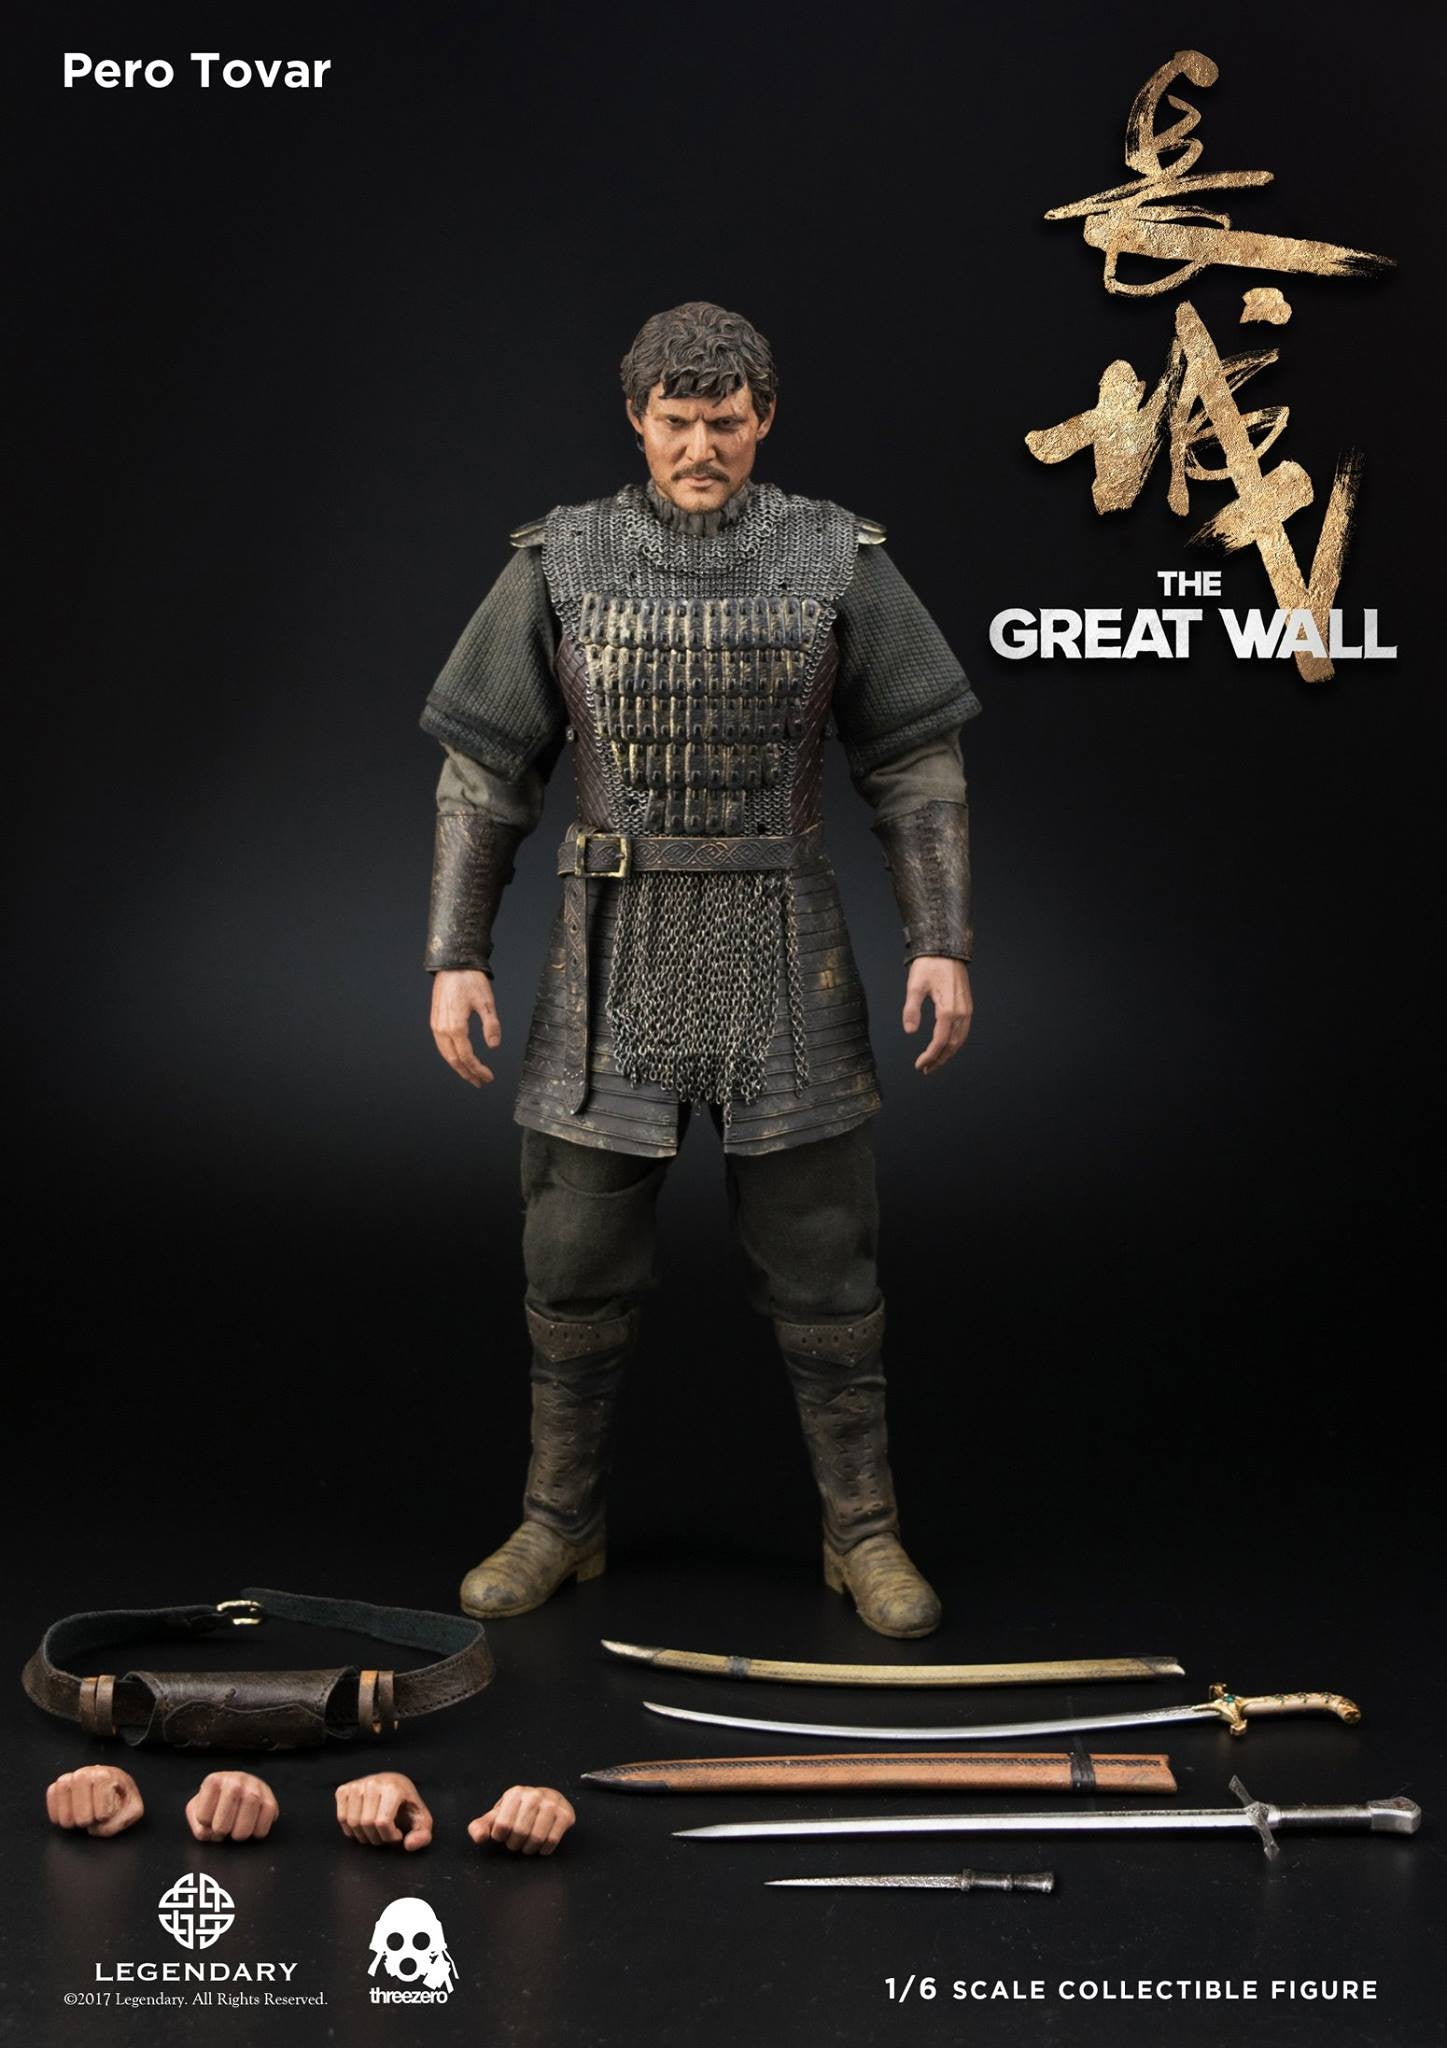 ThreeZero - The Great Wall - Pero Tovar (1/6 Scale)